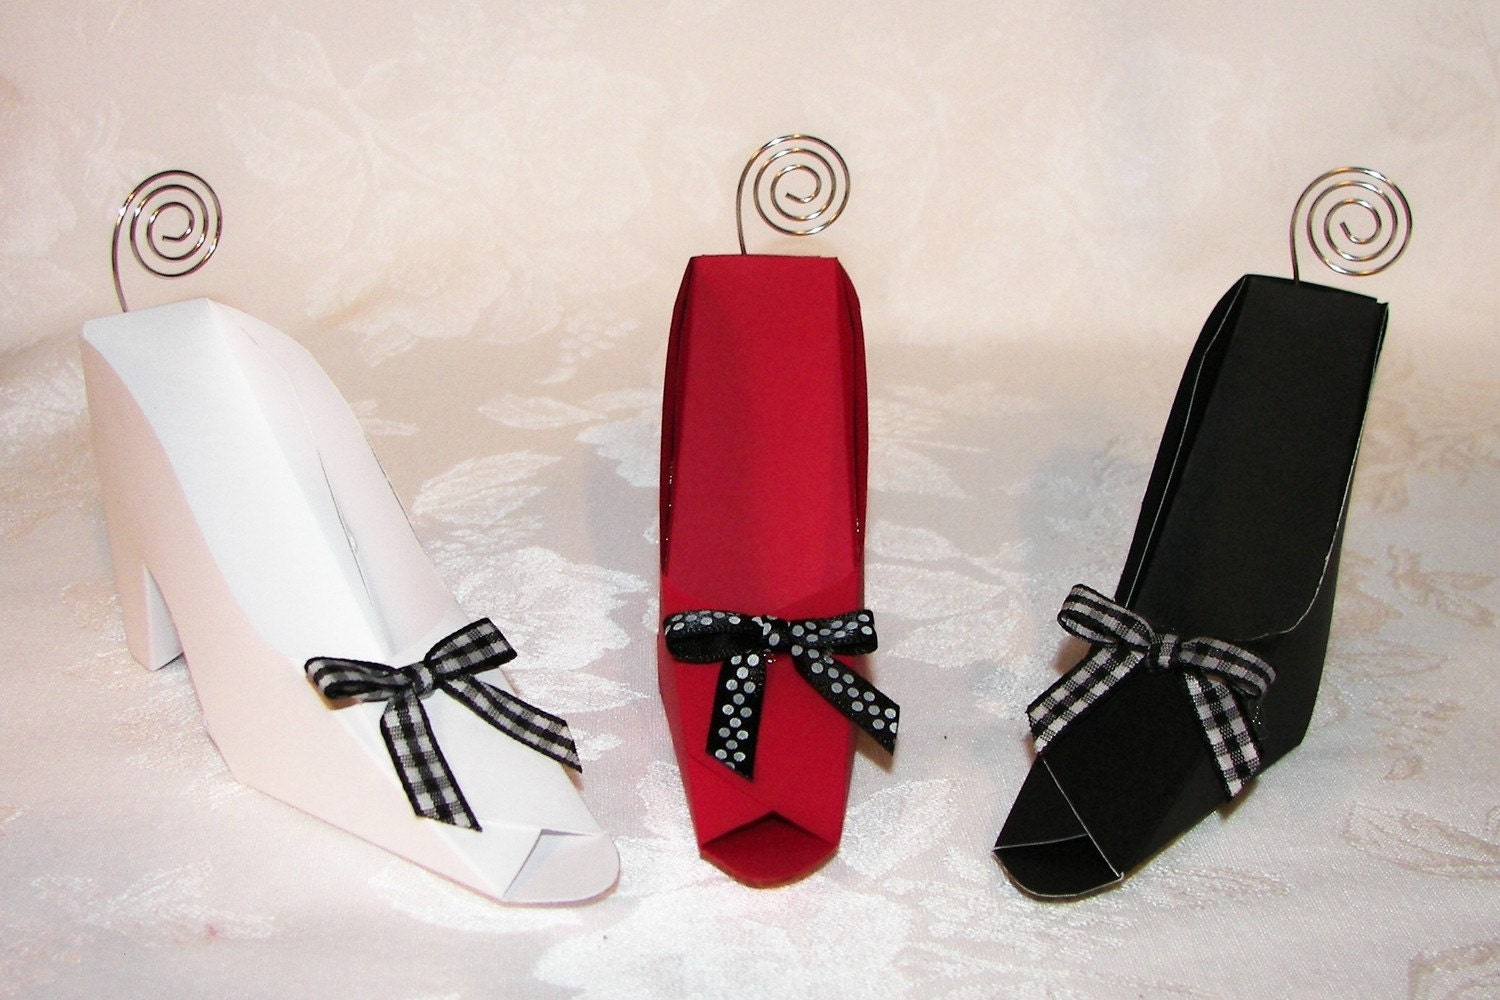 Paper Shoe Place Card Holders Set of 3 Your choice of colors